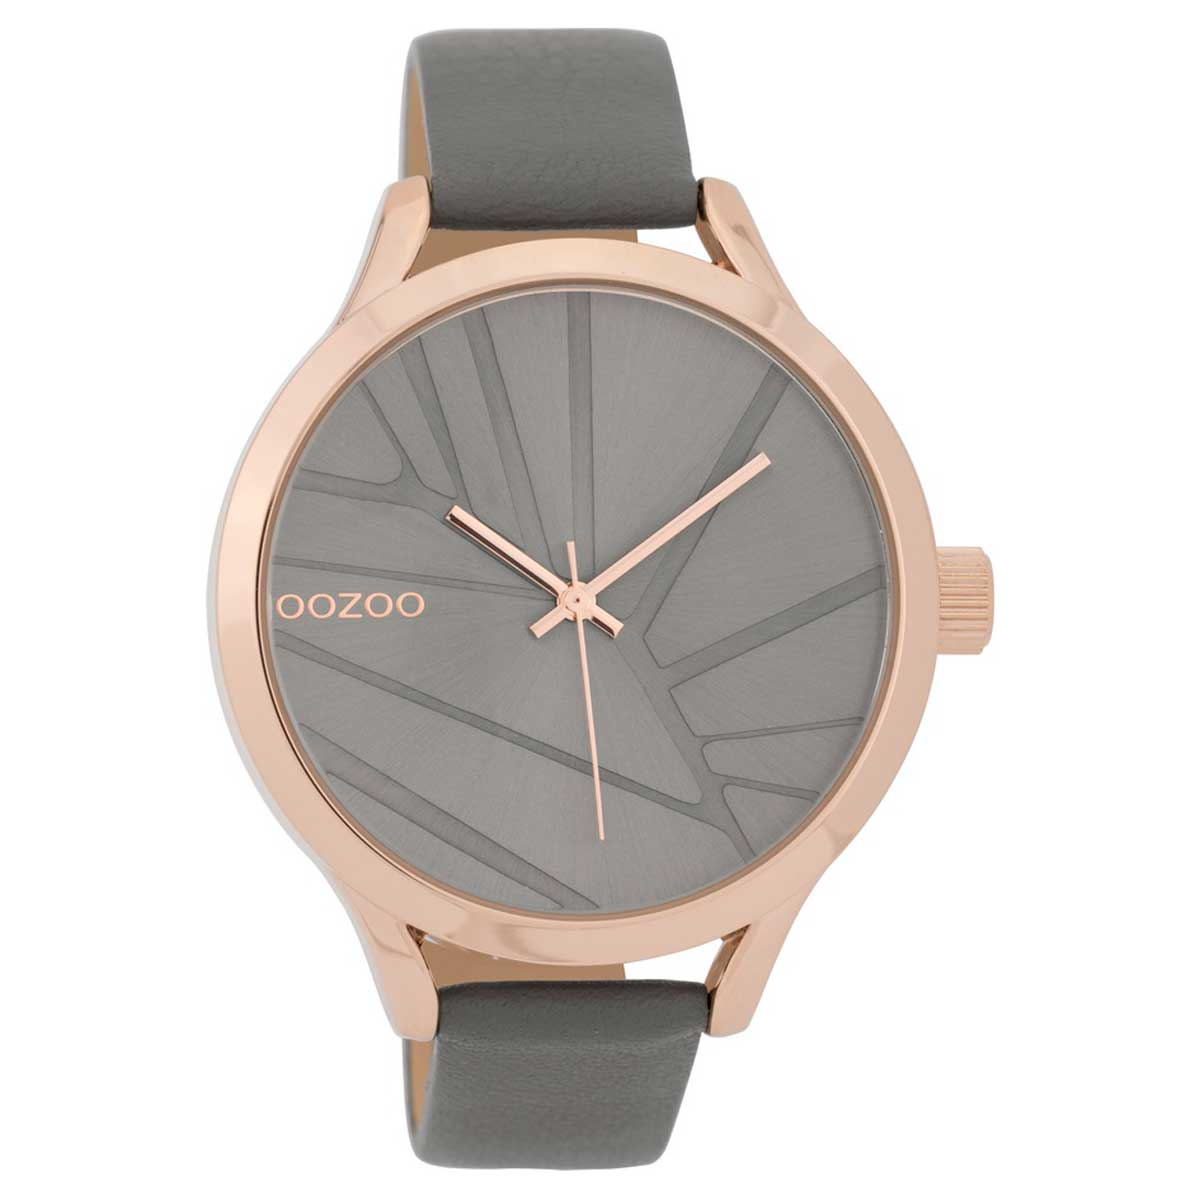 OOZOO Timepieces C9683 ladies watch with rose gold metallic frame and grey  leather strap. Tap to expand 54477d822b3